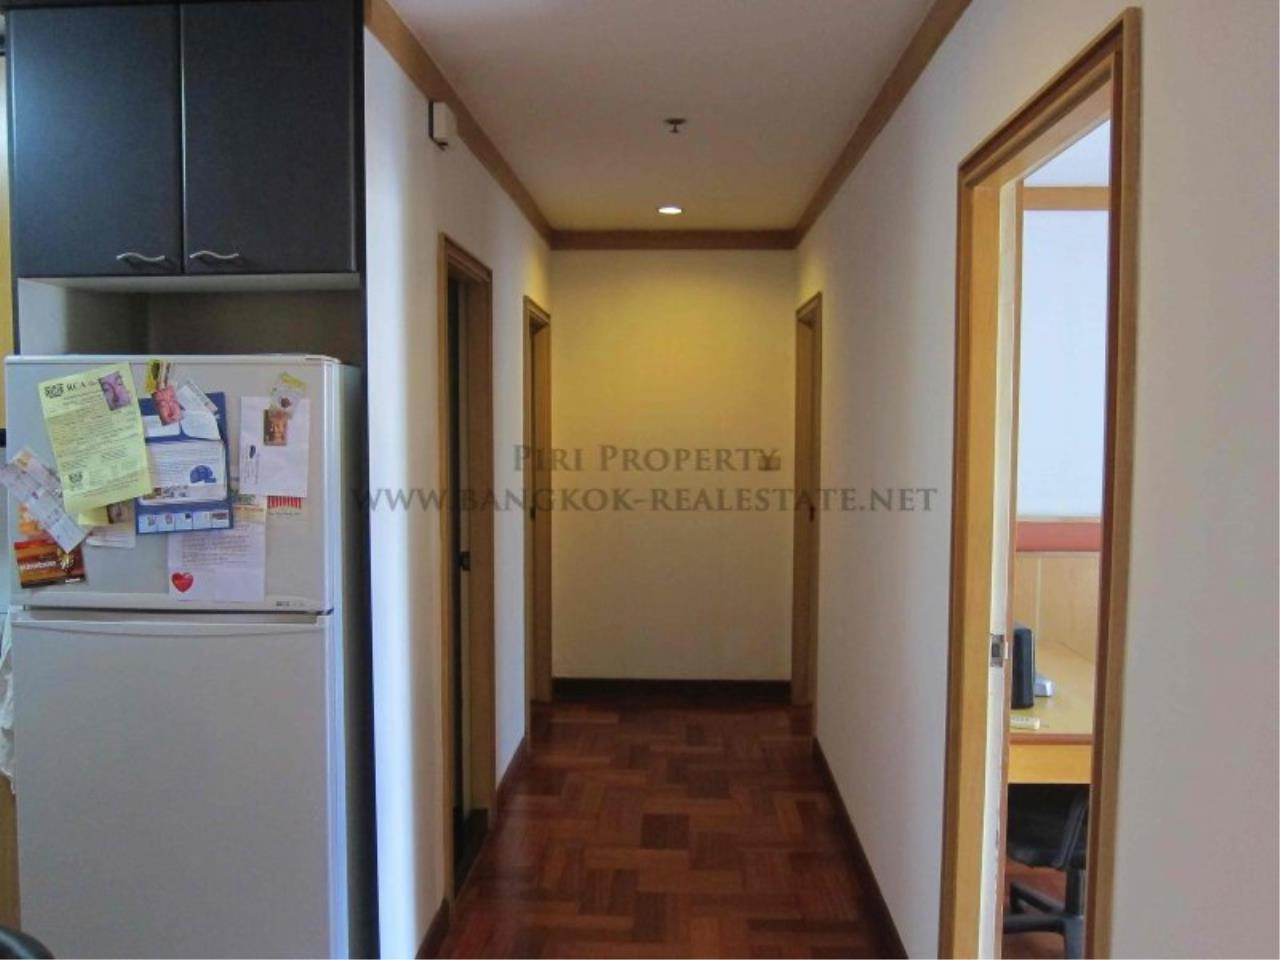 Piri Property Agency's Liberty Park 2 Condominium - Fully furnished 2 Bedroom Condo for Rent 8